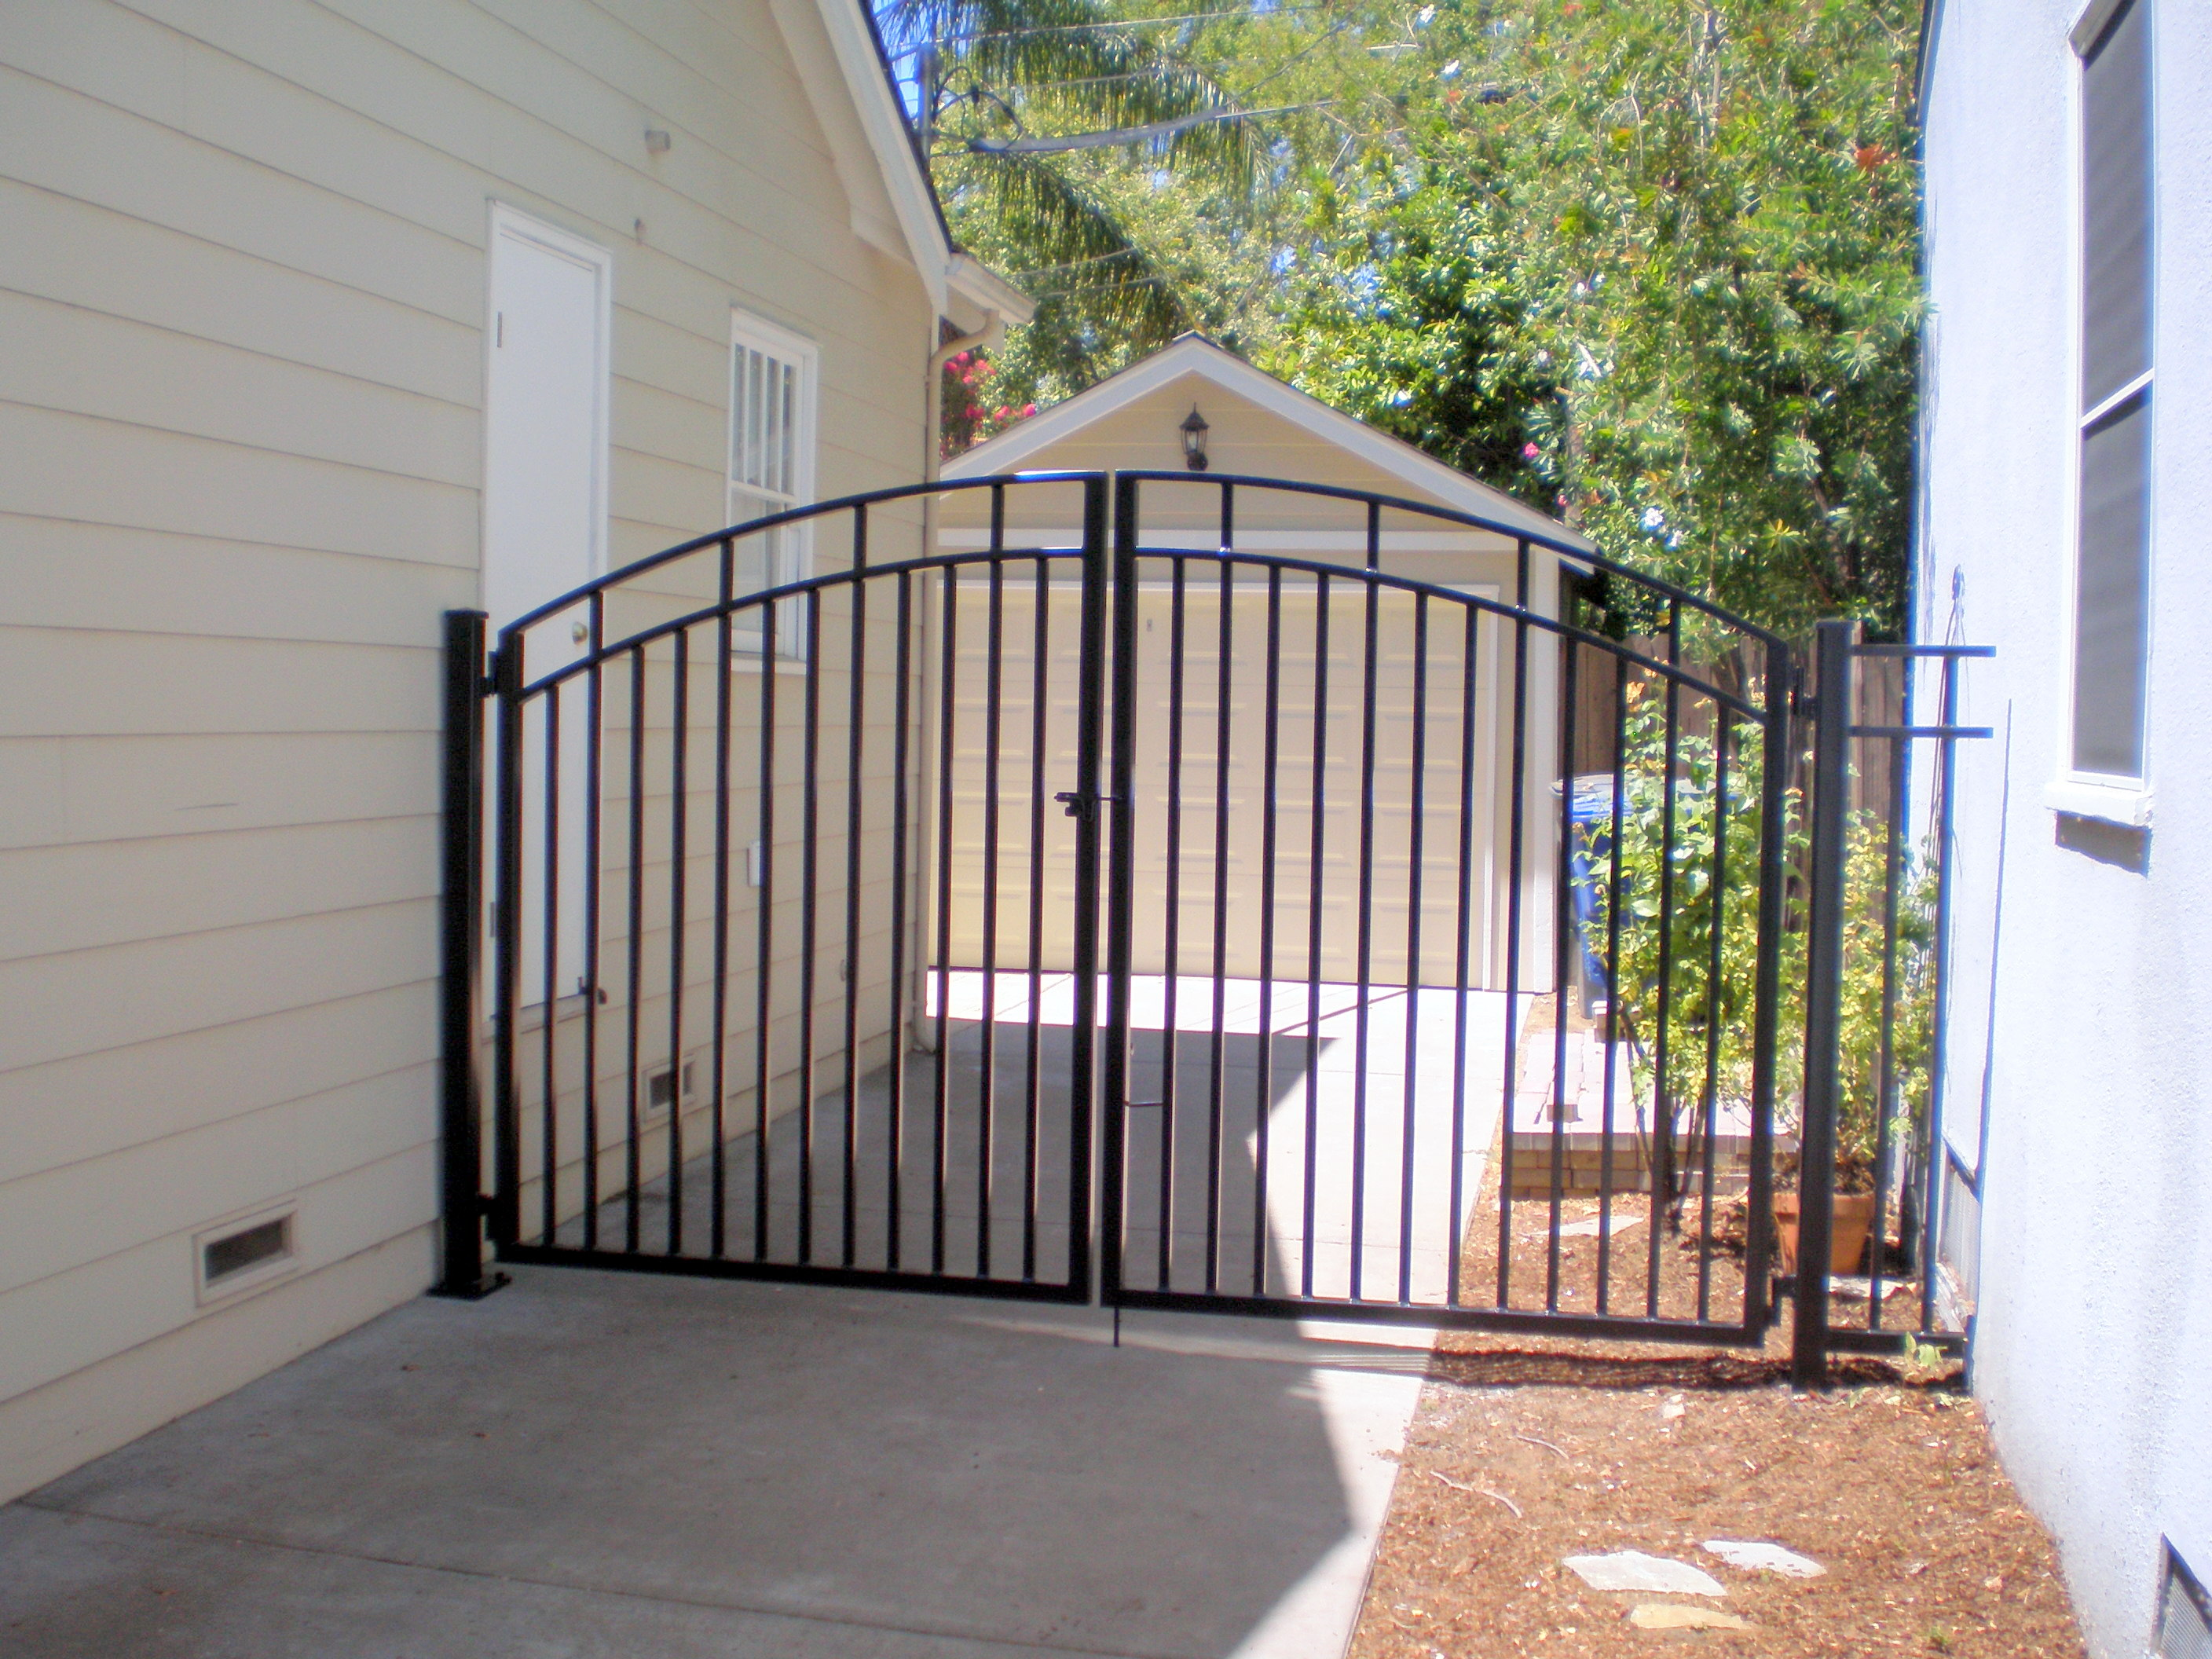 Twisted metal of sacramento Metal gate designs images